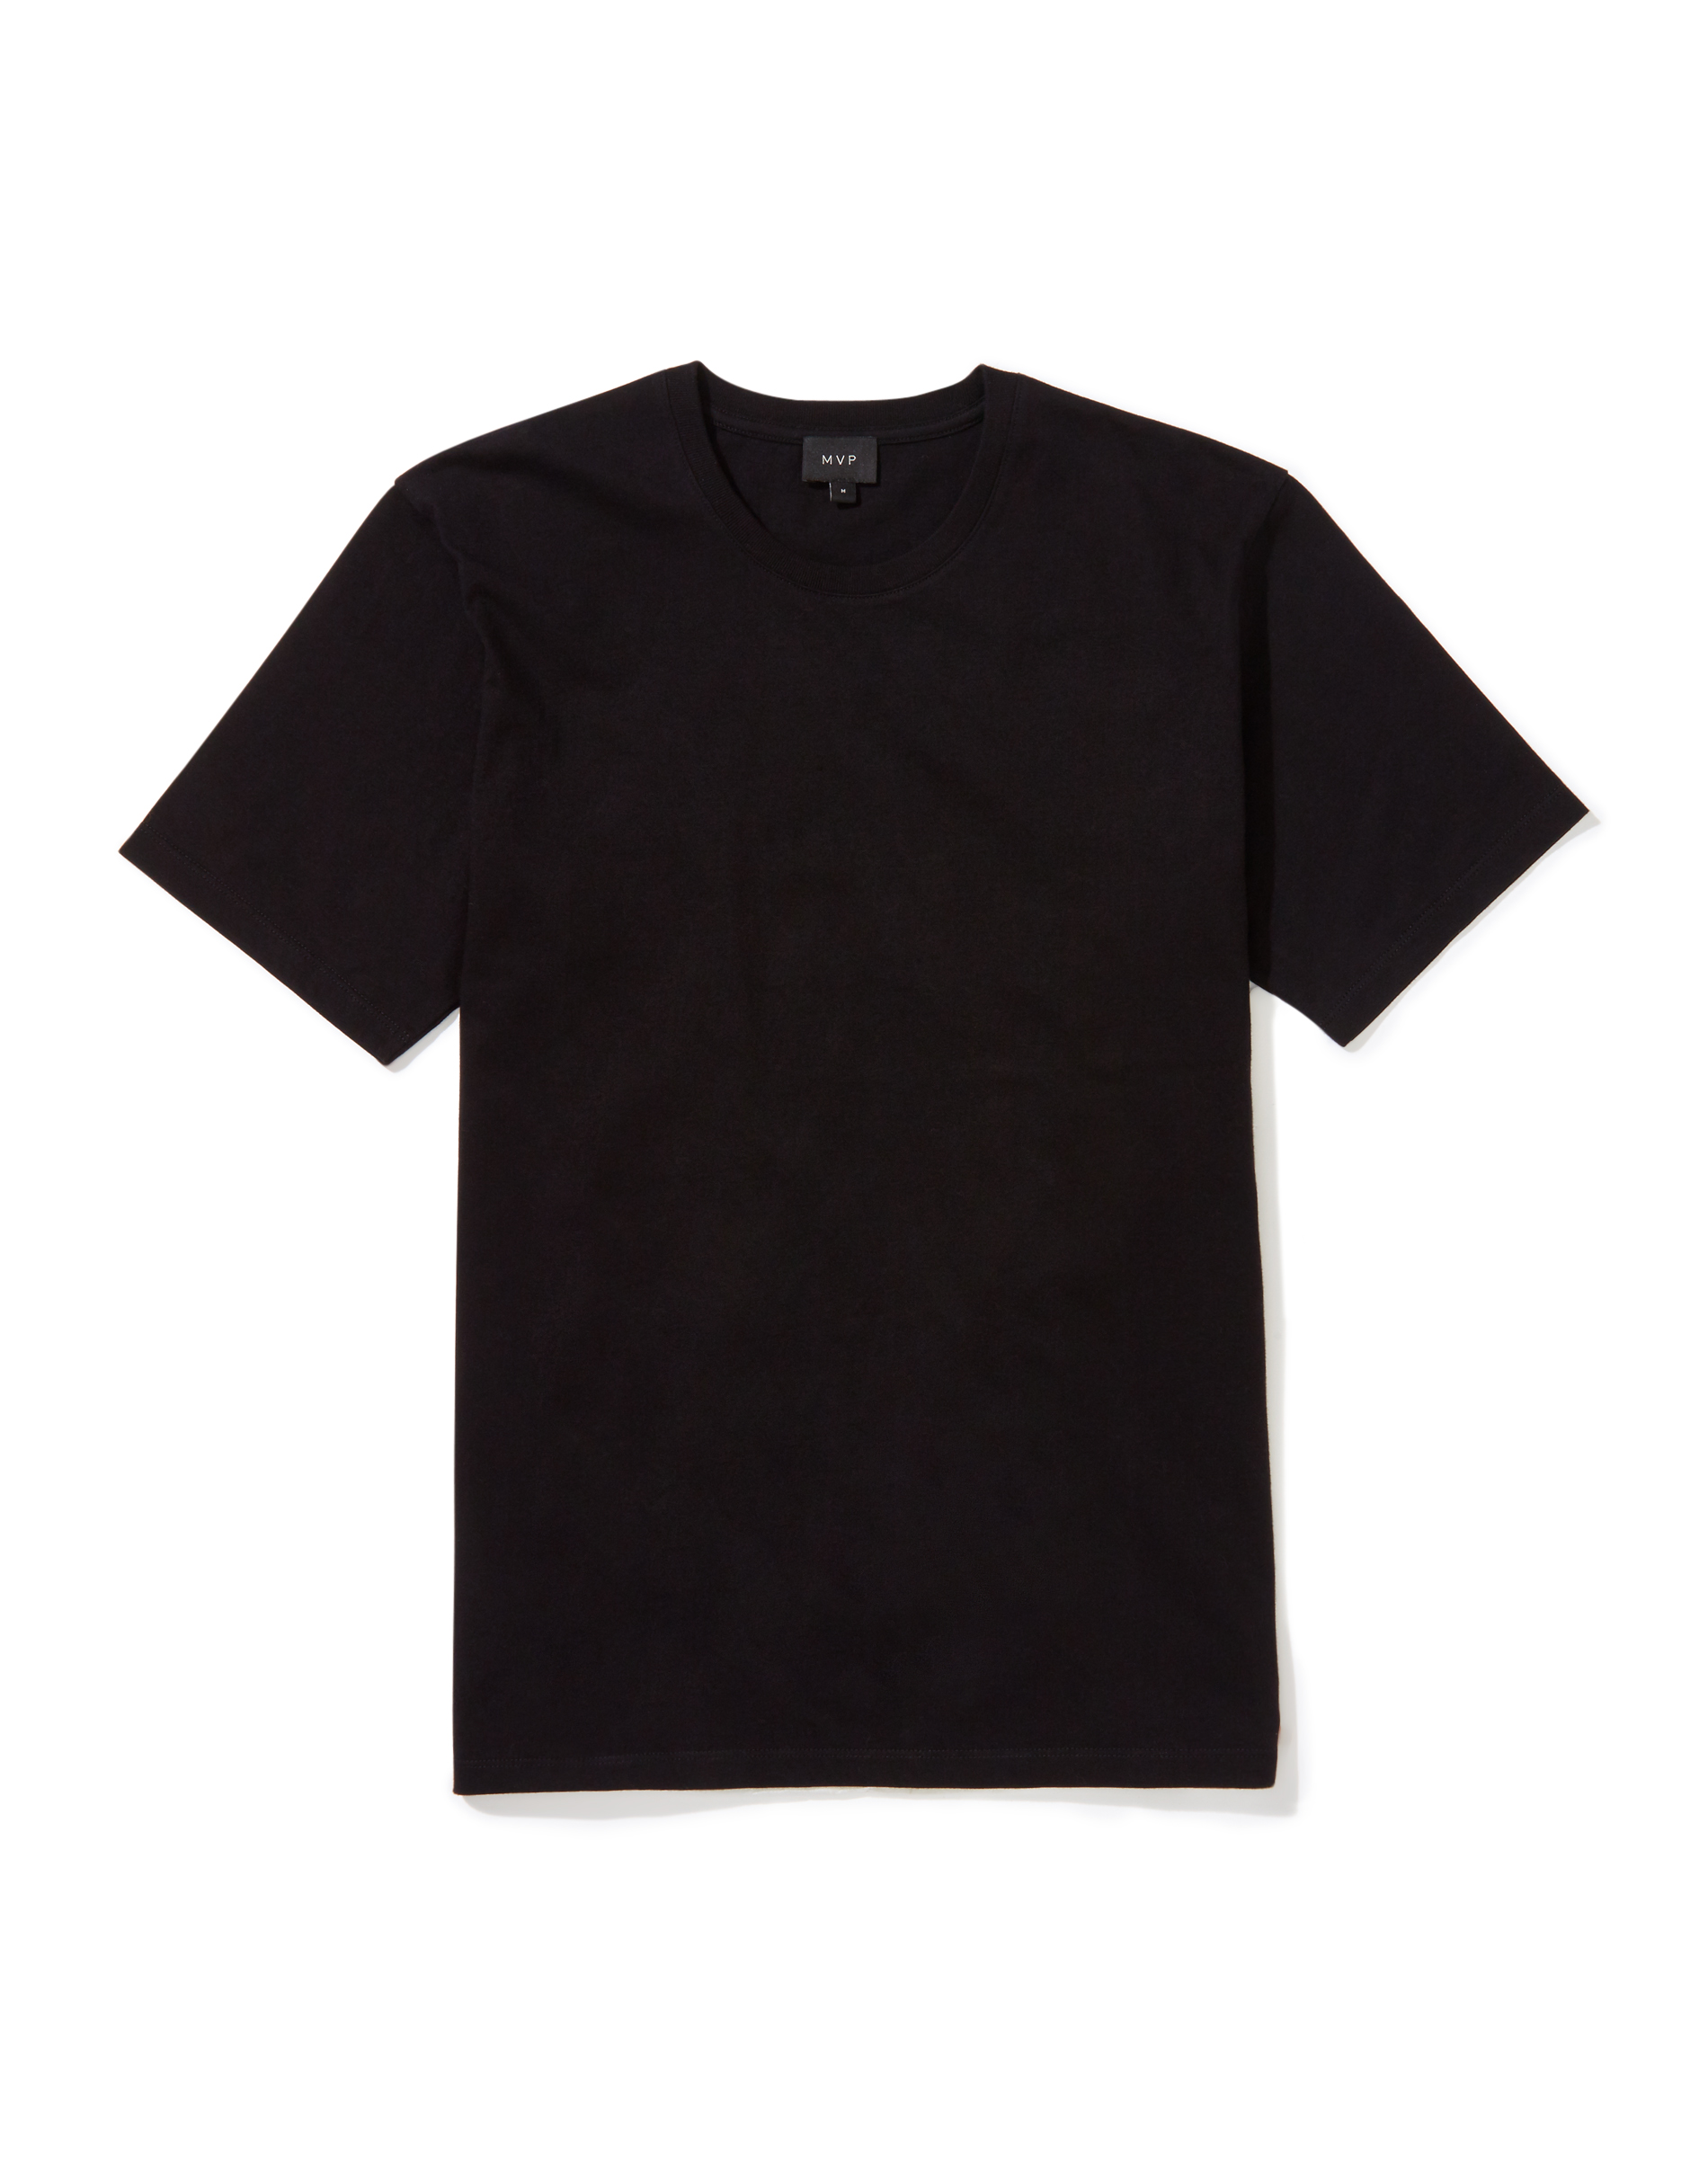 MVP Ashfield Crew Neck T-shirt - Black